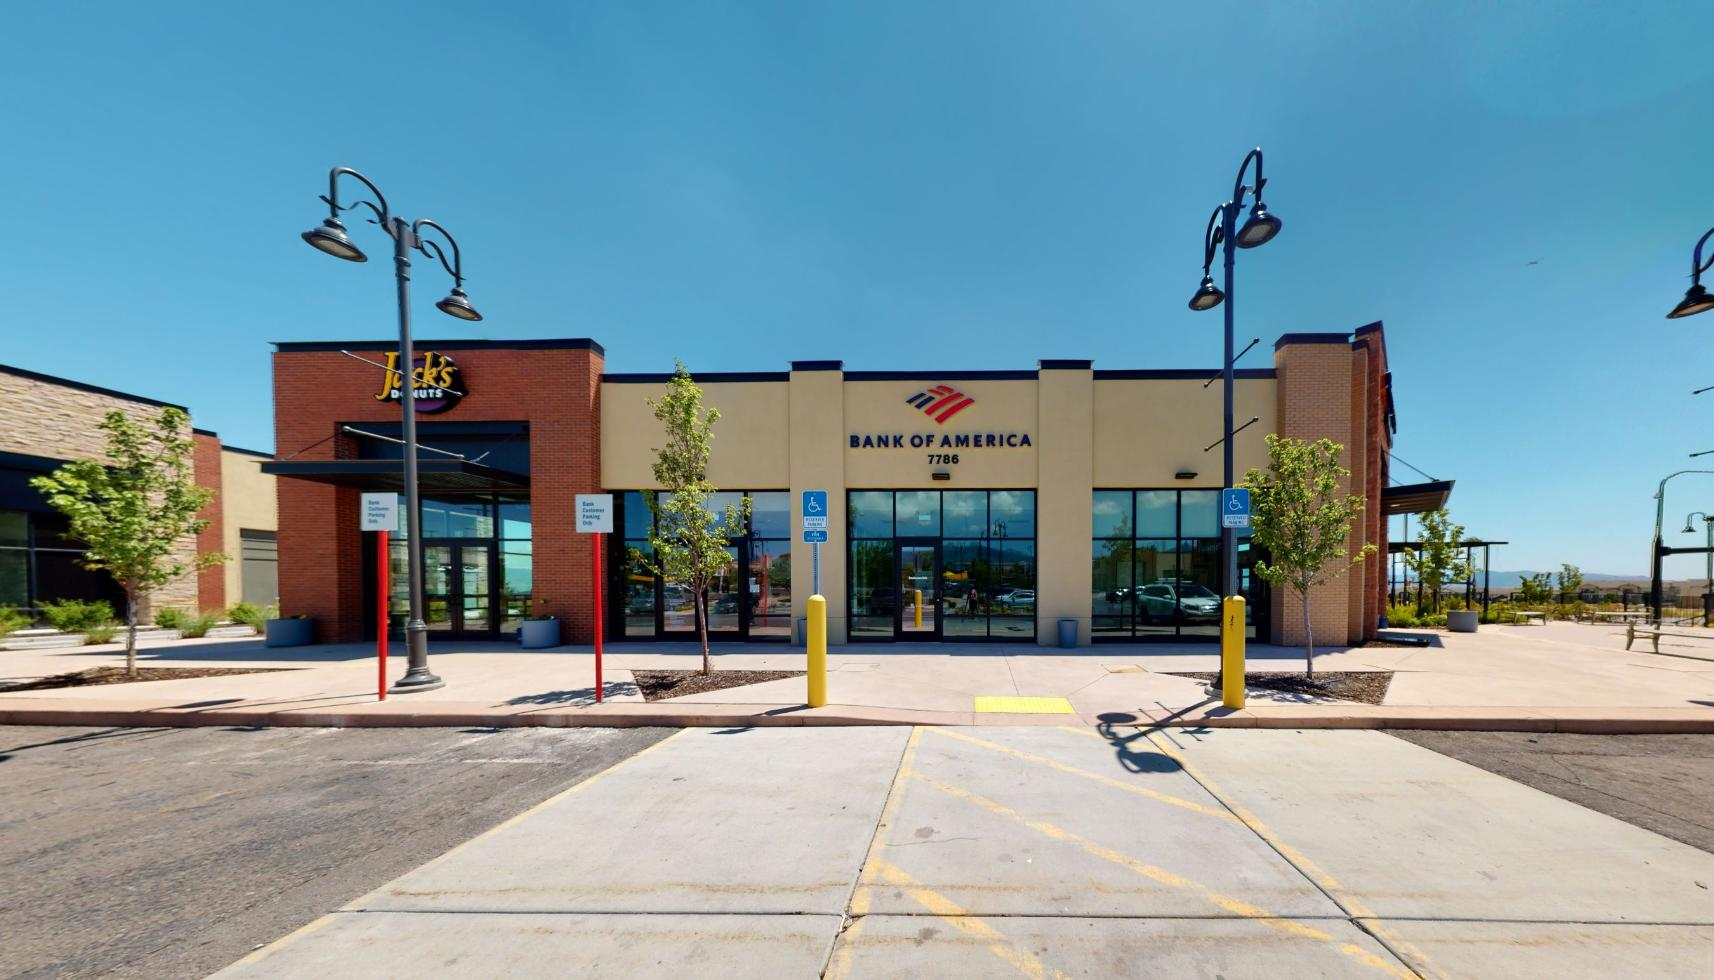 Bank of America financial center with walk-up ATM   7786 S 5600 W, West Jordan, UT 84081